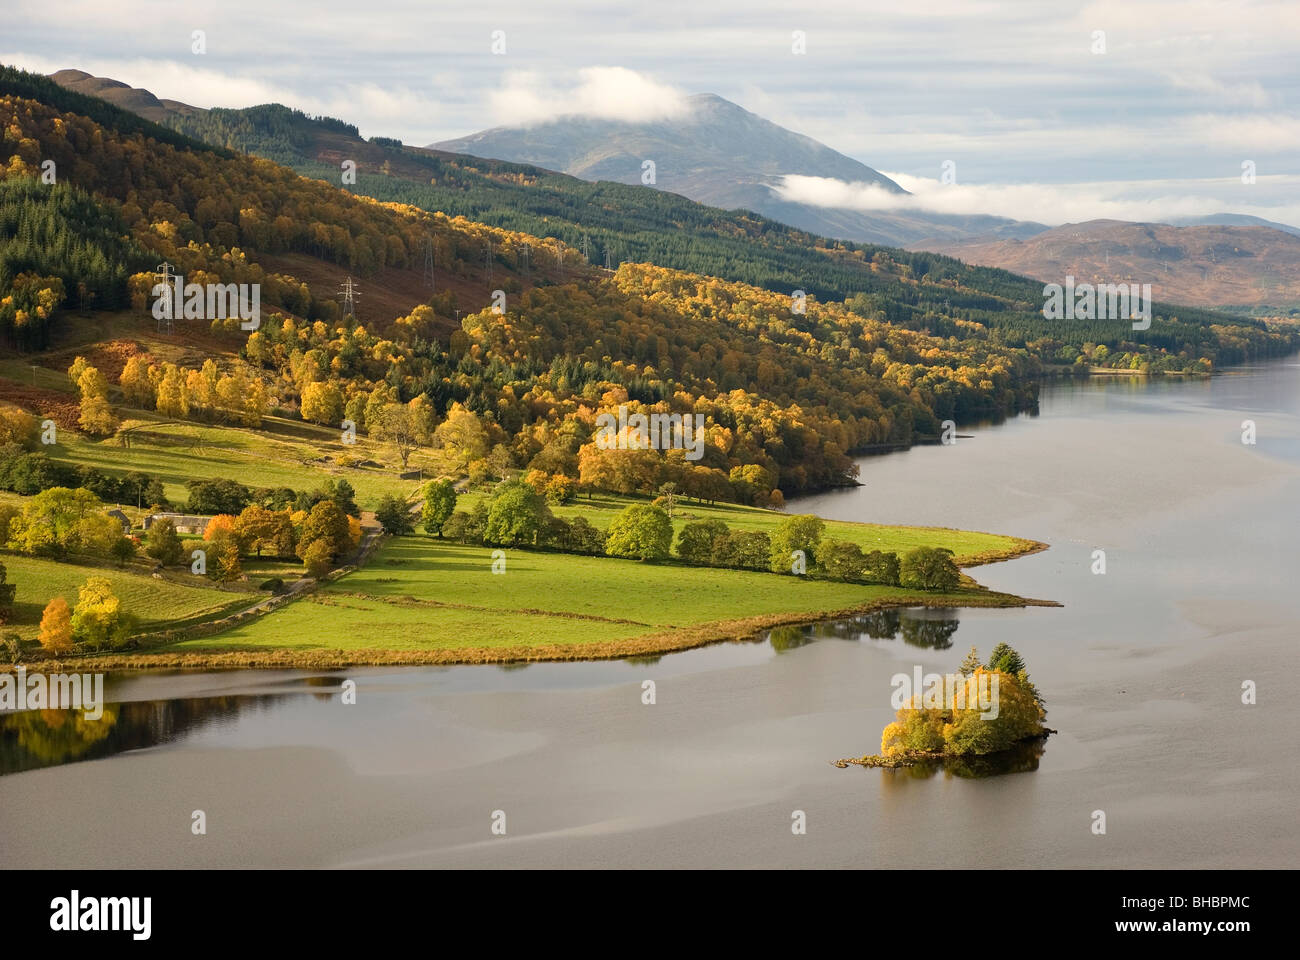 Autumn at Loch Tummel, Perthshire, Scotland - Stock Image